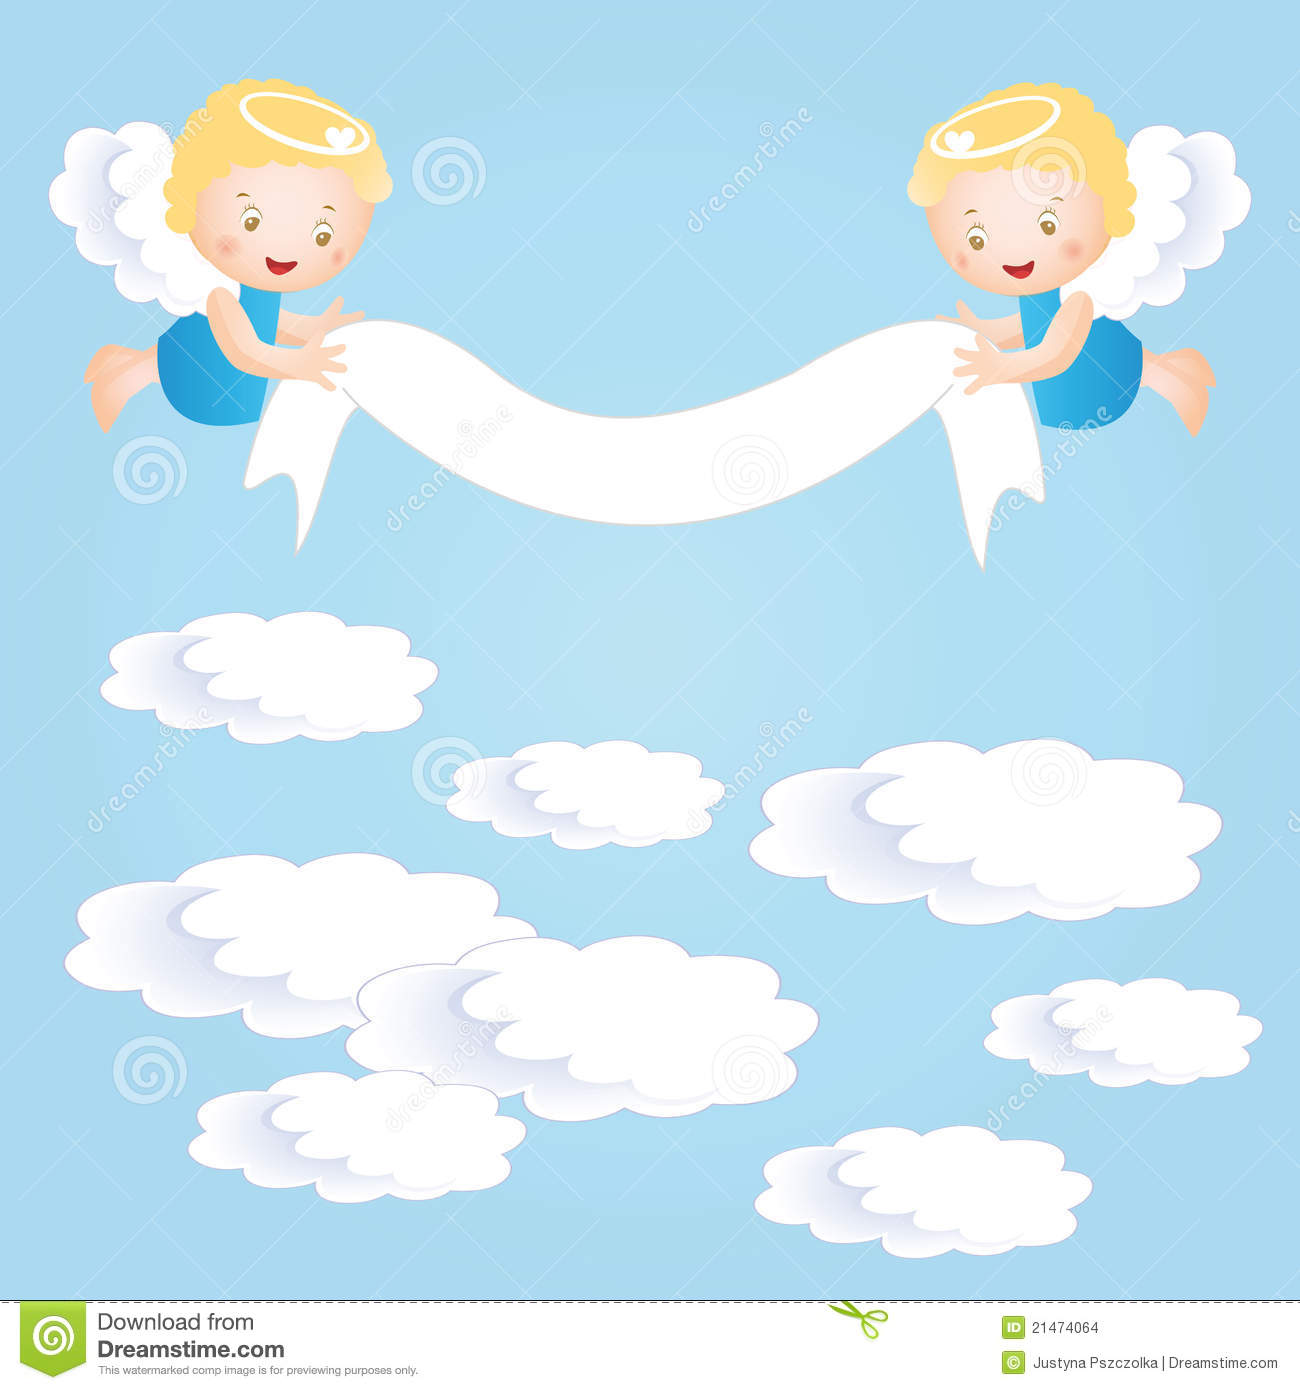 Baby girl baptism clipart. Christening stock illustrations background